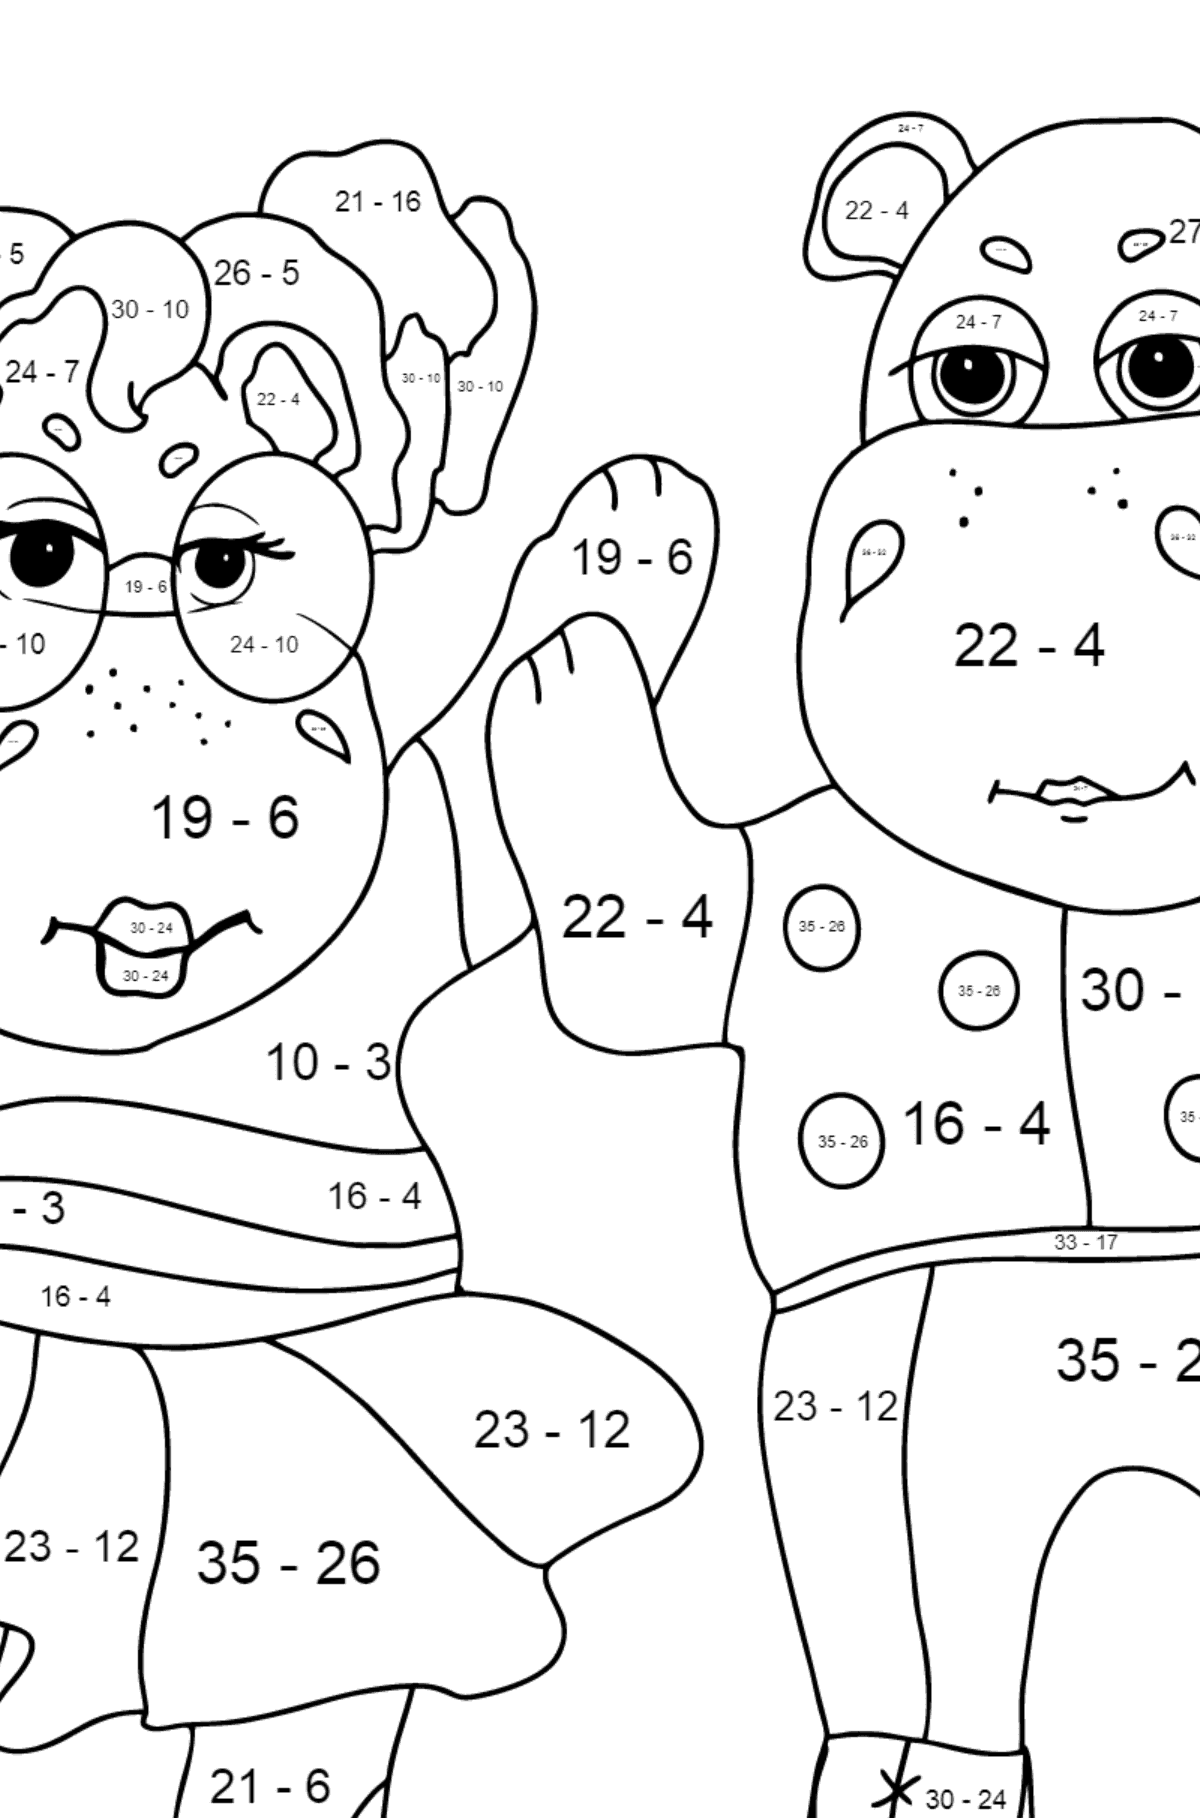 Coloring Page - Hippos are Dancing for Children  - Color by Number Substraction